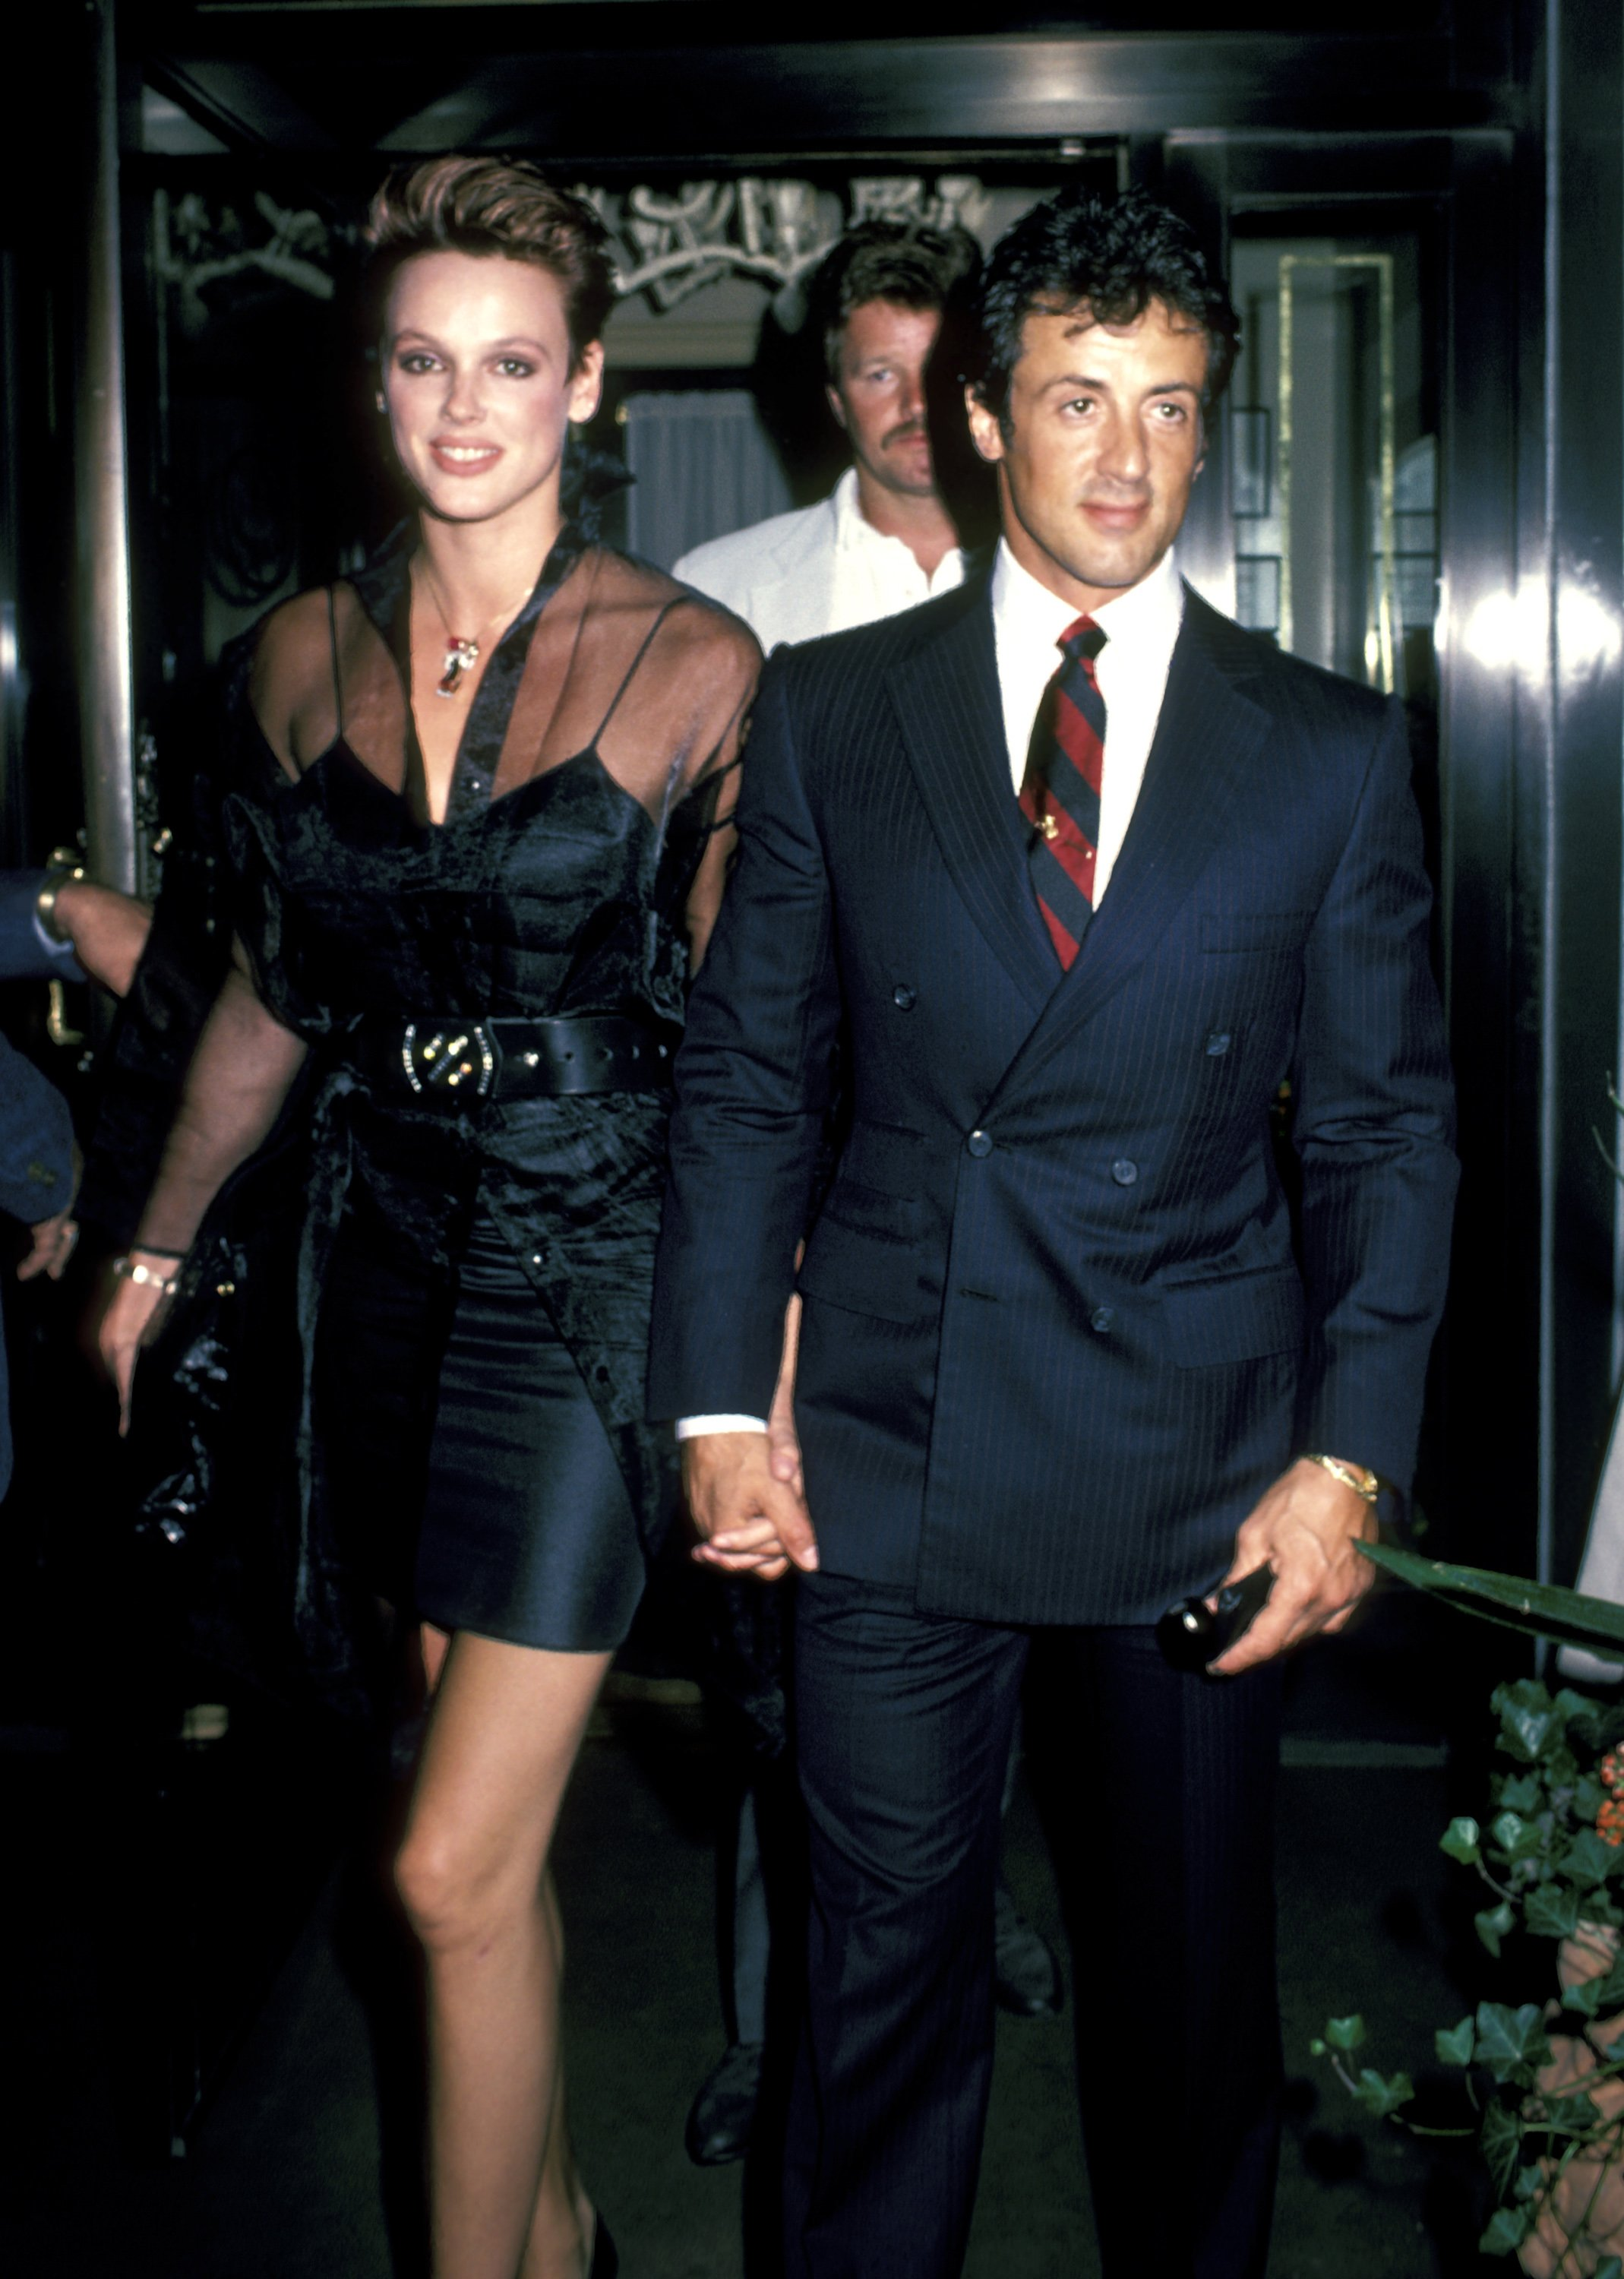 Brigitte Nielsen and Sylvester Stallone outside Le Cirque Restaurant in New York City - August 6, 1985 | Photo: Getty Images